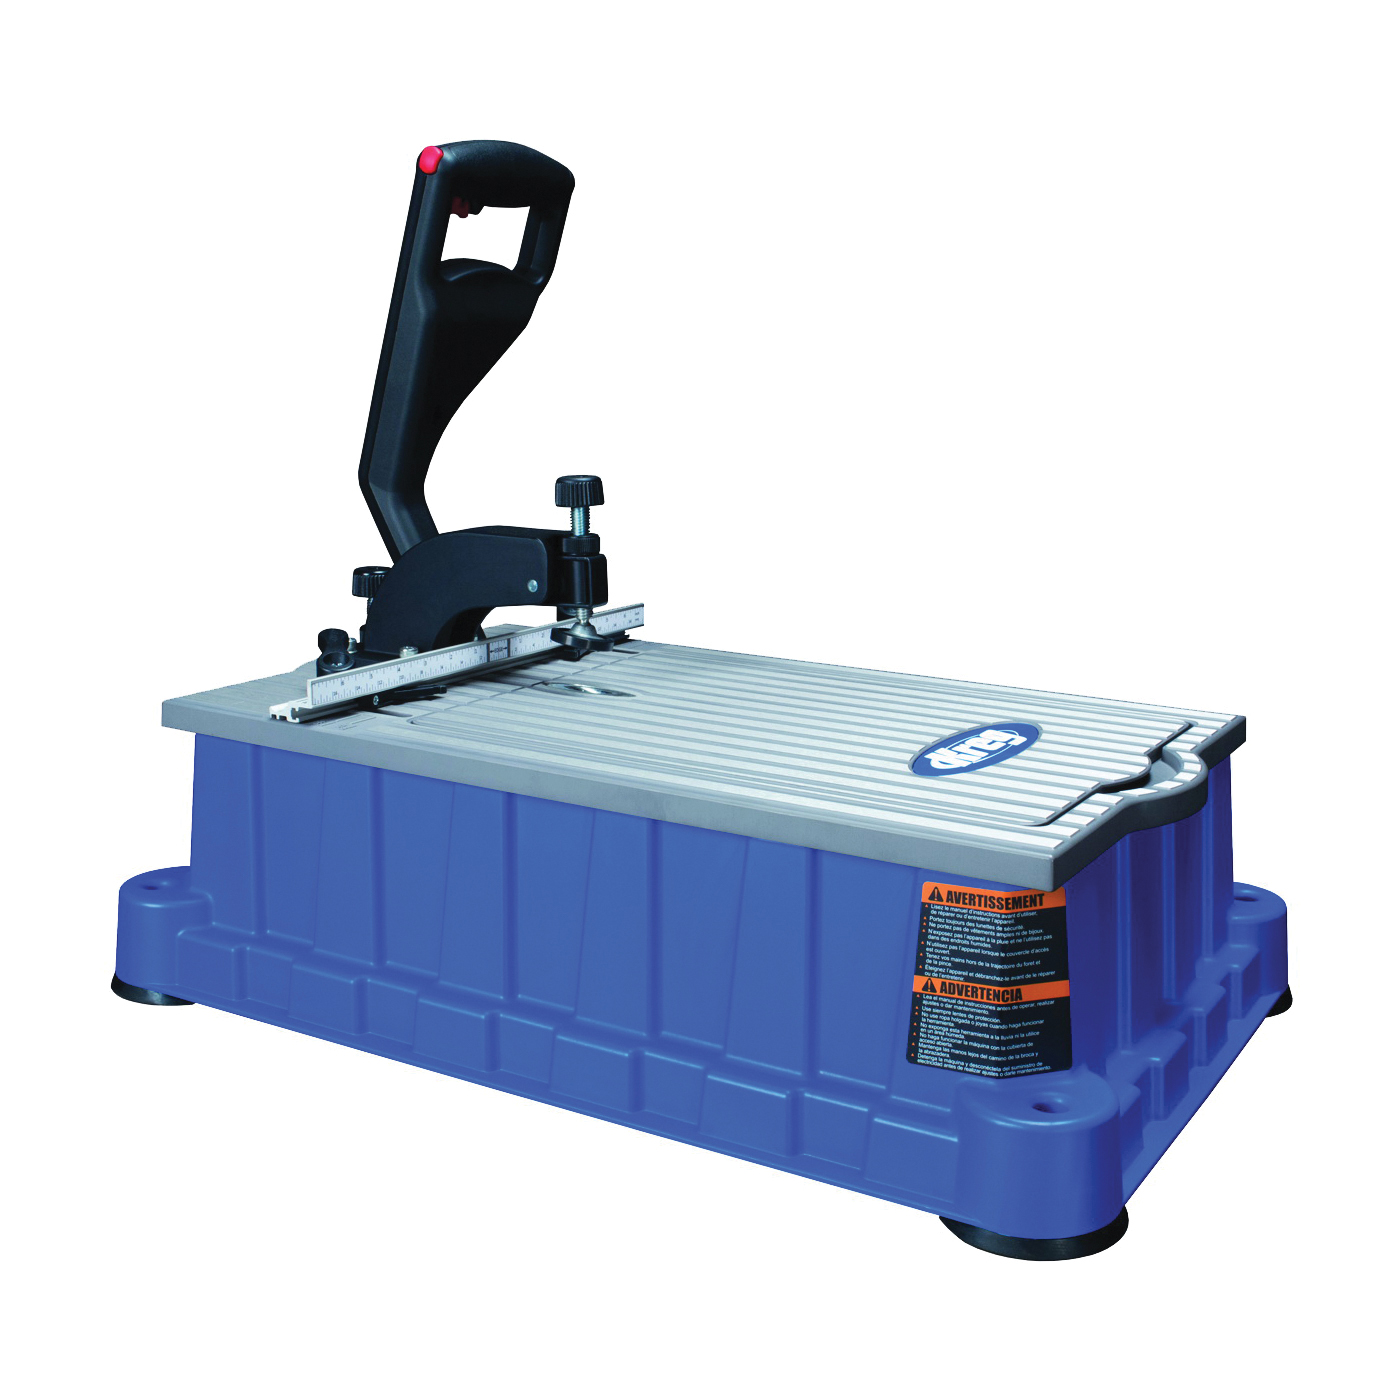 Picture of Kreg DB210 Pocket-Hole Machine, 1/2 to 1-1/2 in Thick Clamping, Aluminum Tabletop